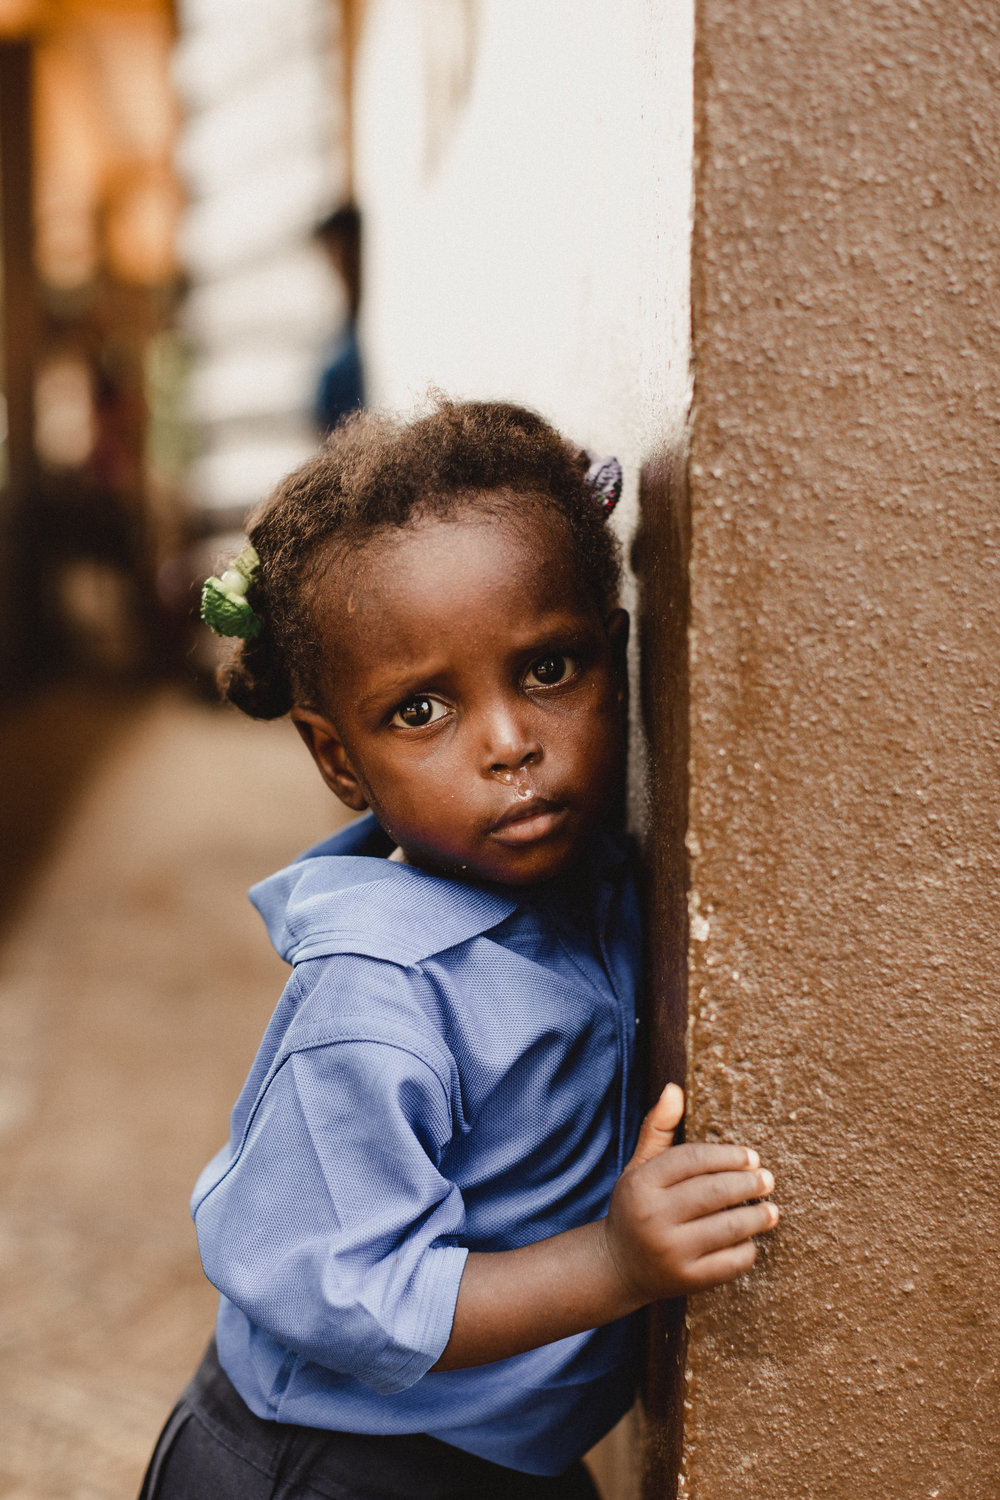 one of the tiniest humans i have ever encountered. even though she couldn't talk, she clearly has so much to say. you know how it goes...the eyes are the window to the soul.